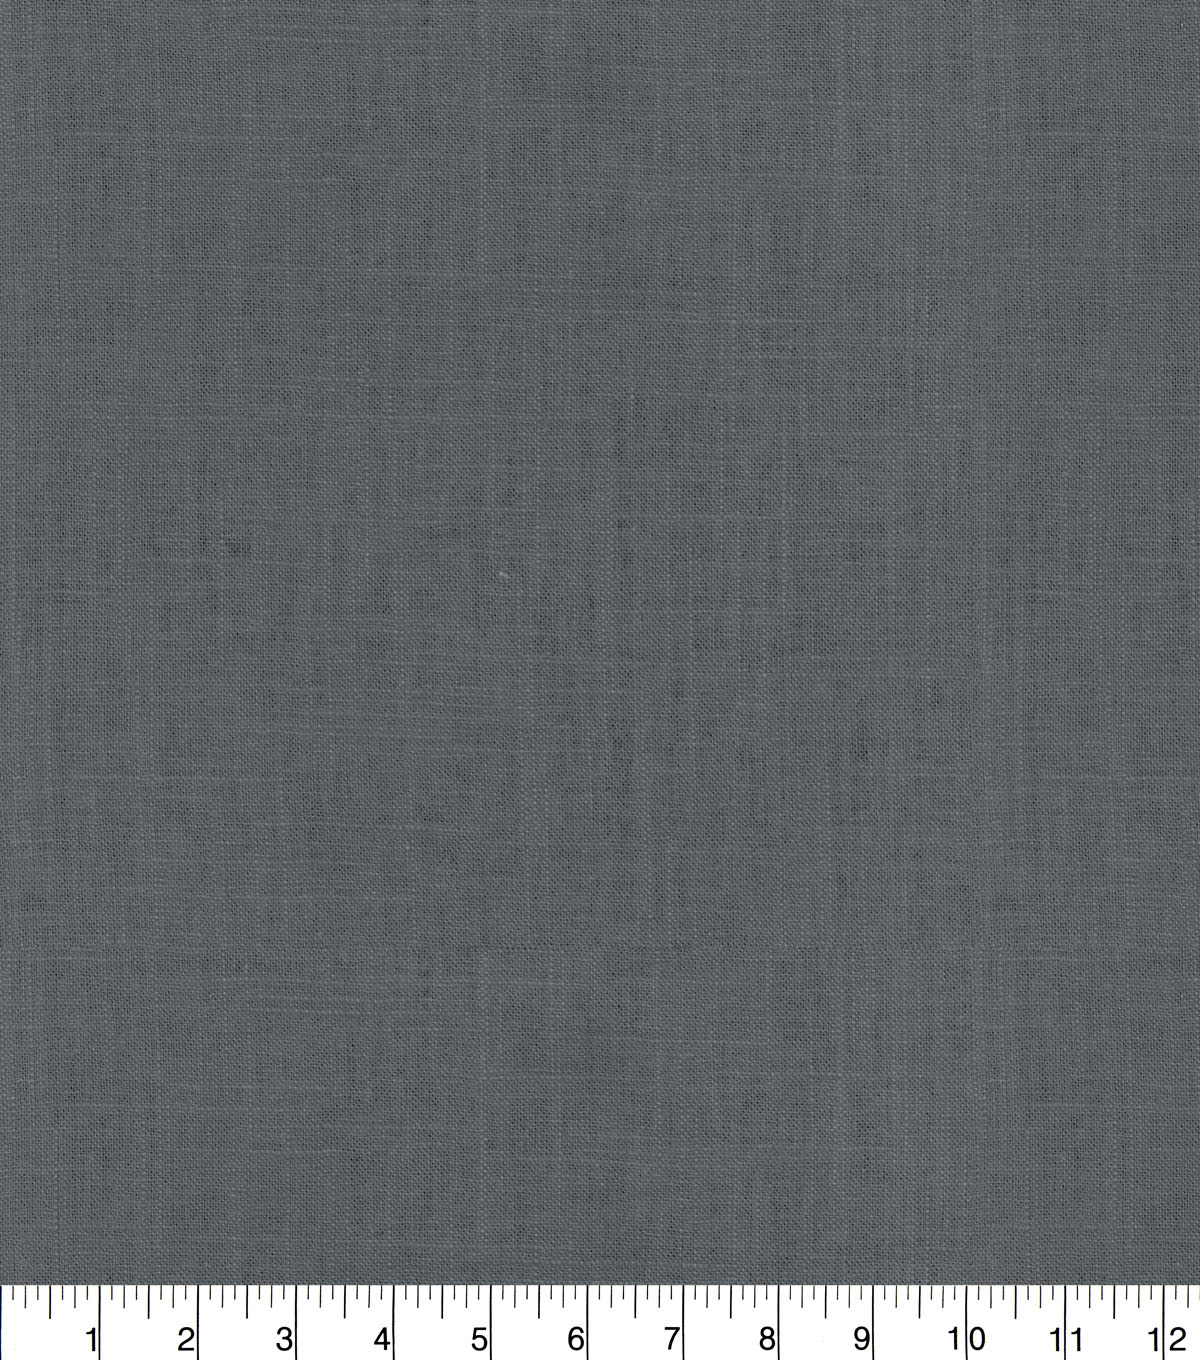 Home Decor 8\u0022x8\u0022 Fabric Swatch-P/K Lifestyles Shoreline Graphite